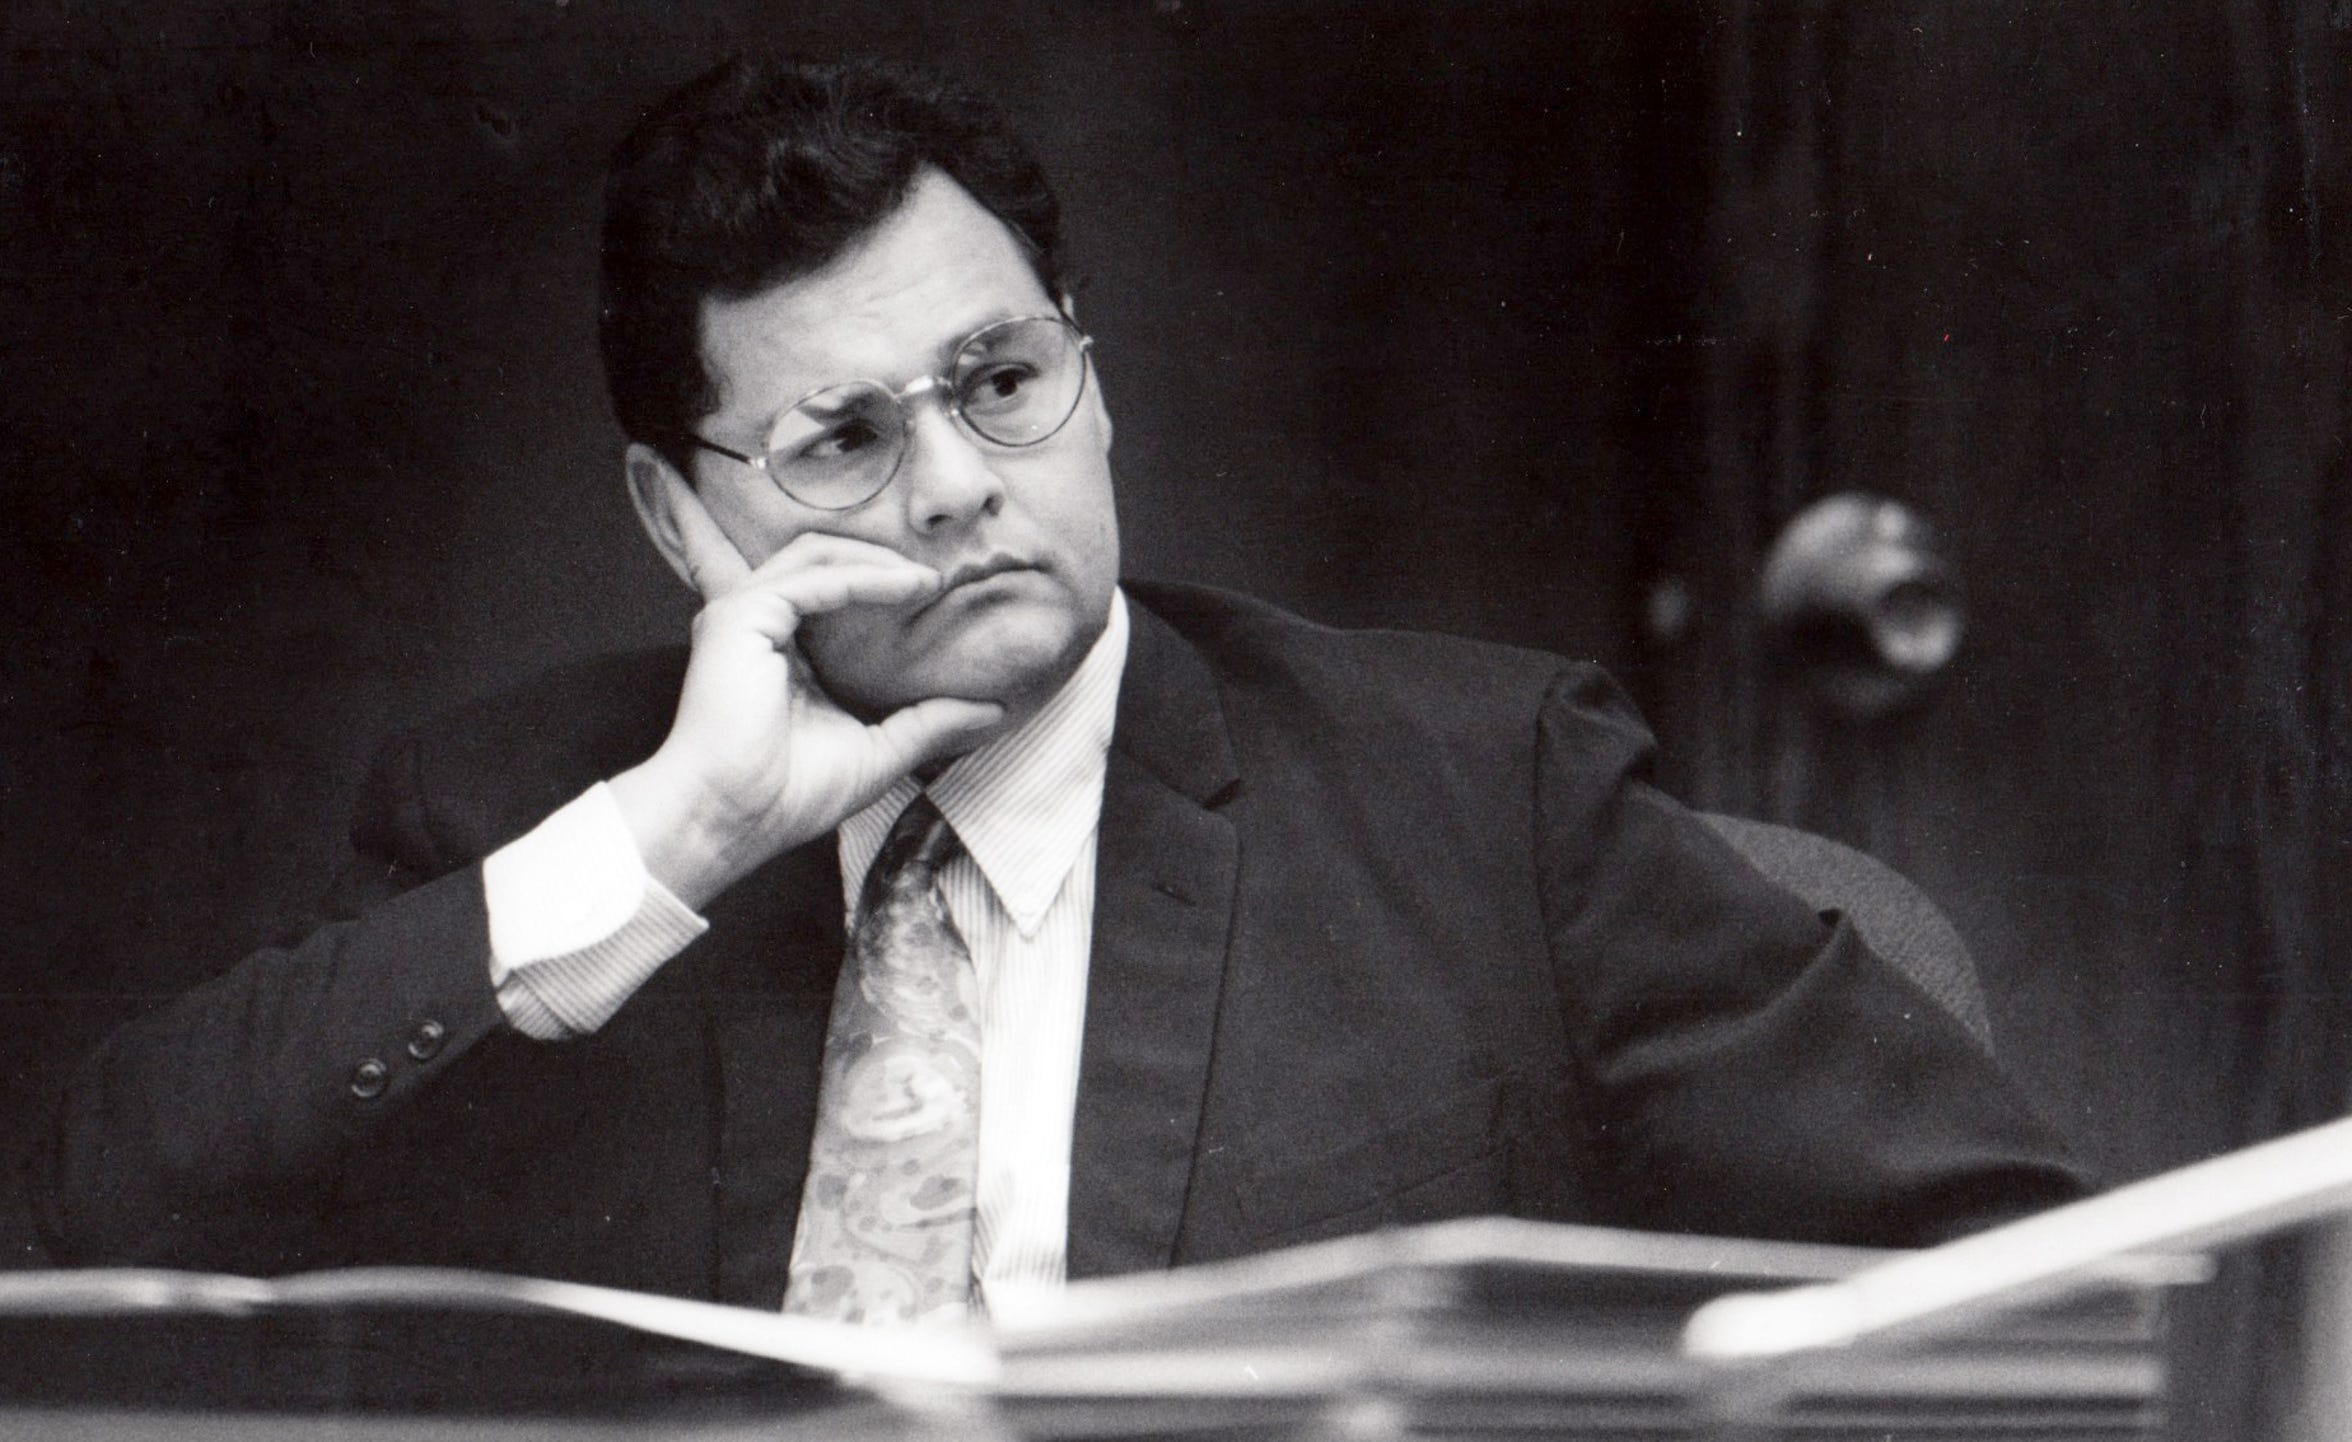 Then-state Sen. Armando Ruiz listens during a meeting at the Capitol on April 4, 1991.